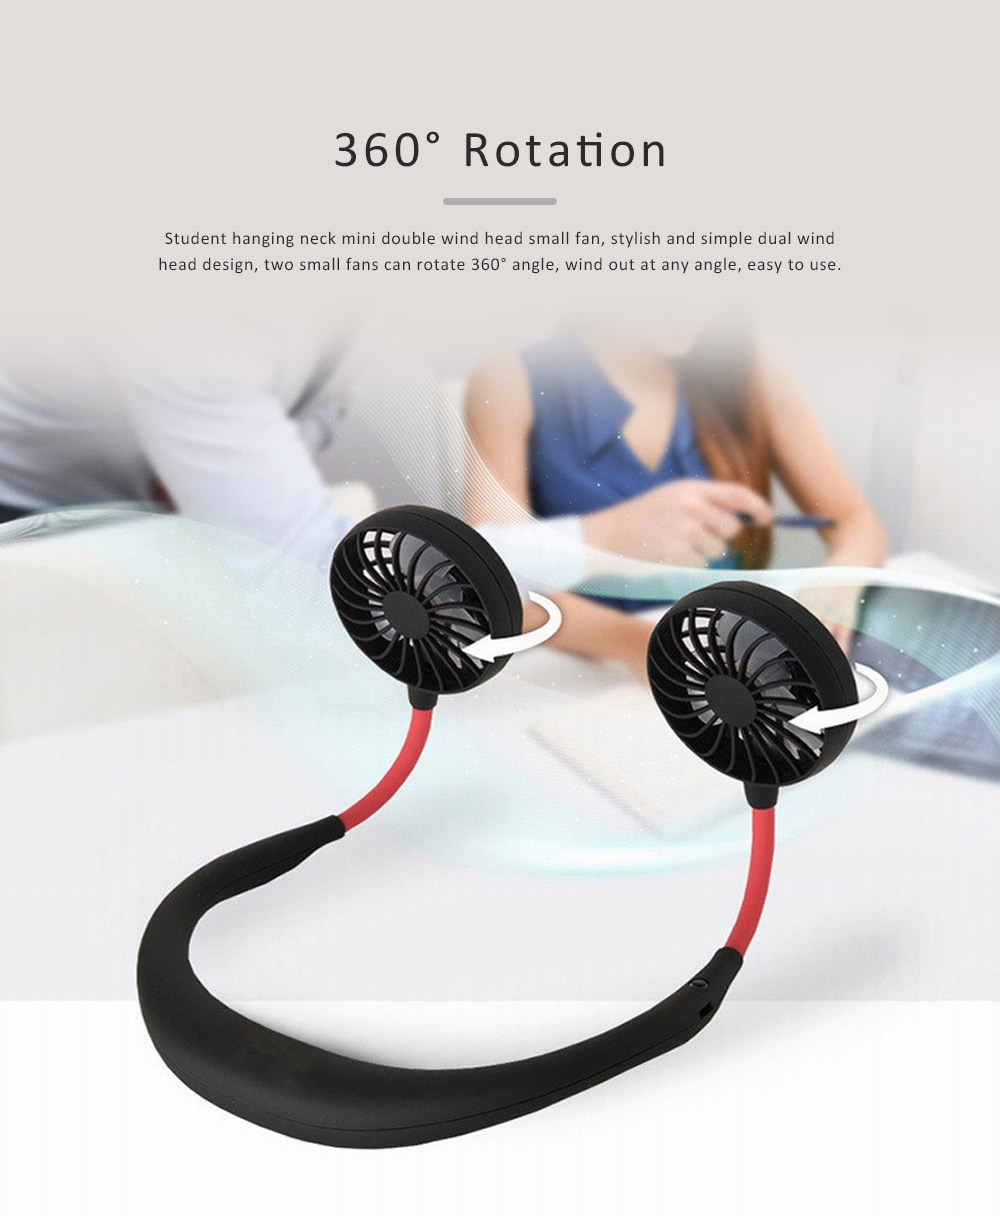 Hands-Free Neckband Fan Neckband Cooling Fan Portable Neckband Fan with USB Rechargeable for Traveling Outdoor Office 5